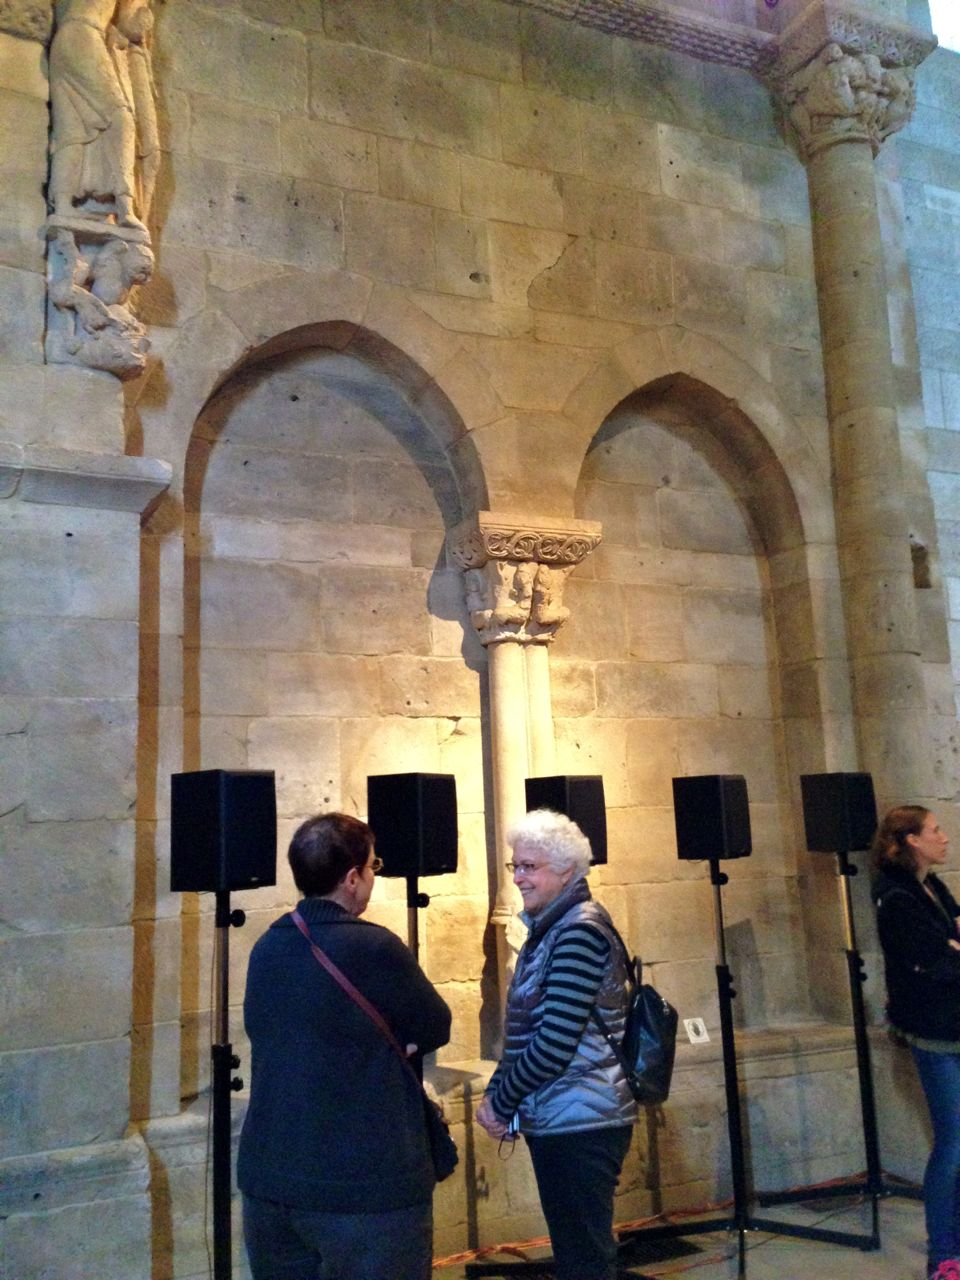 Janet-Cardiff-at-the-Cloisters-Photo-by-Michelle-Aldredge-13